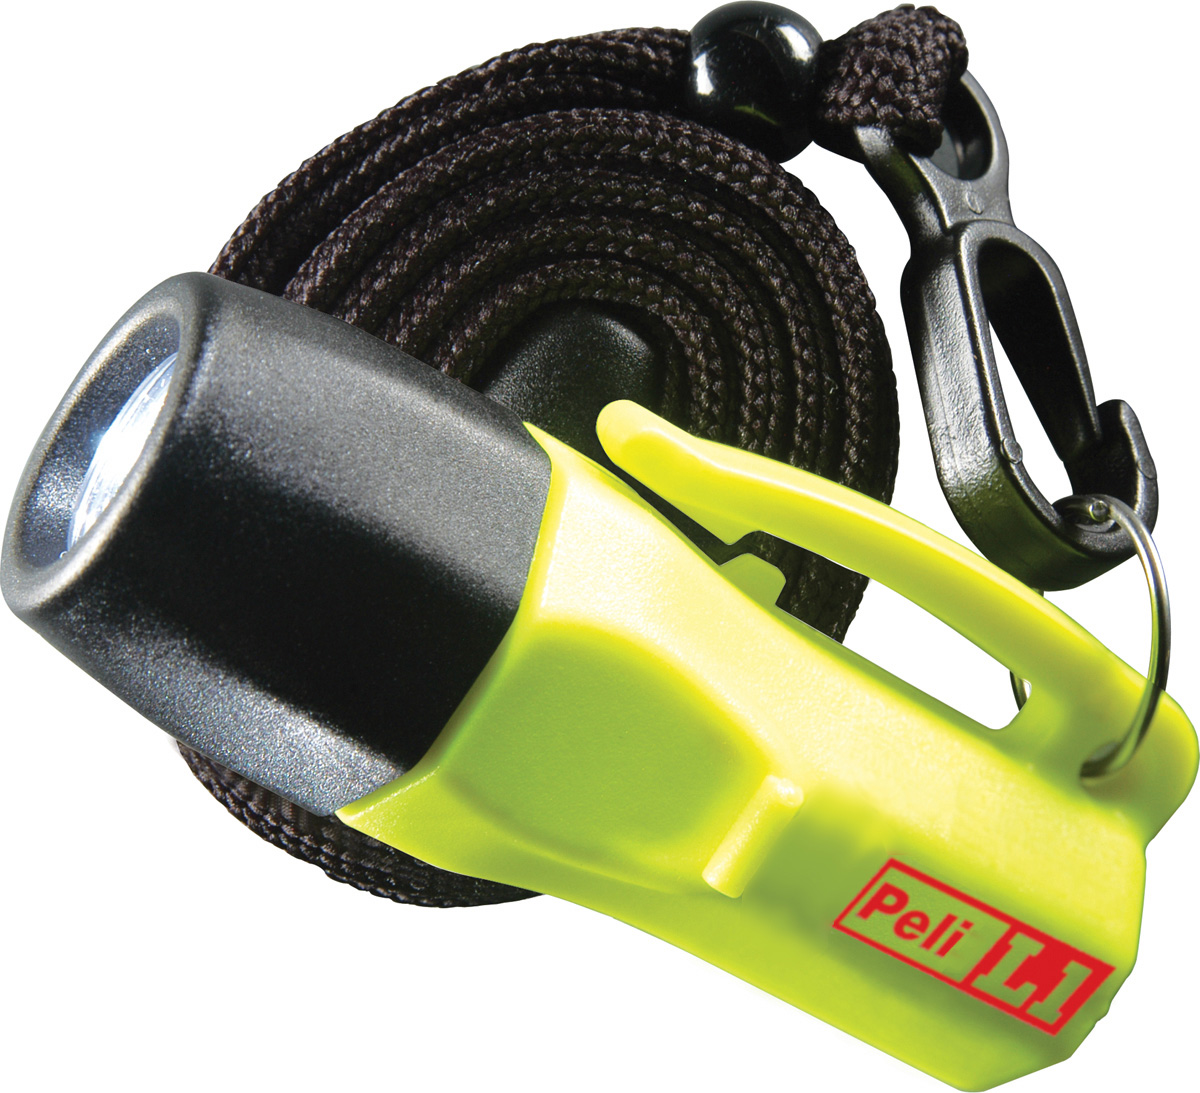 peli 1930 small finger led torch light